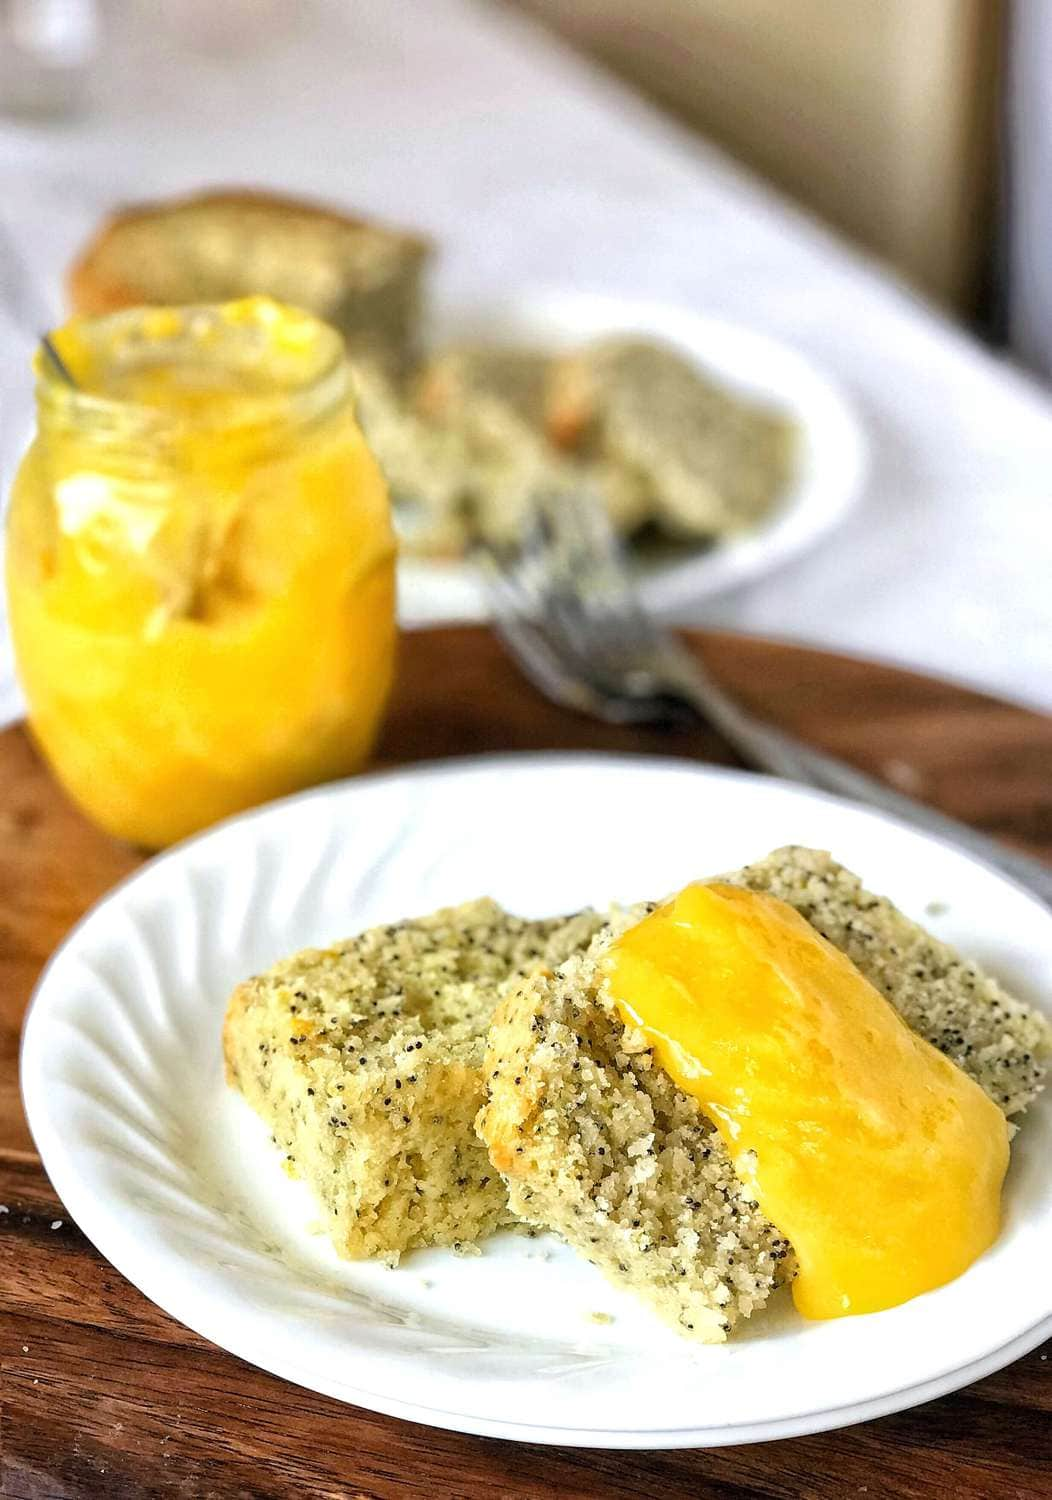 Lemon curd is easy to make, quick to come together, with only a few simple pantry staples! It's rich, buttery, and so versatile. Put it on and in everything you bake!